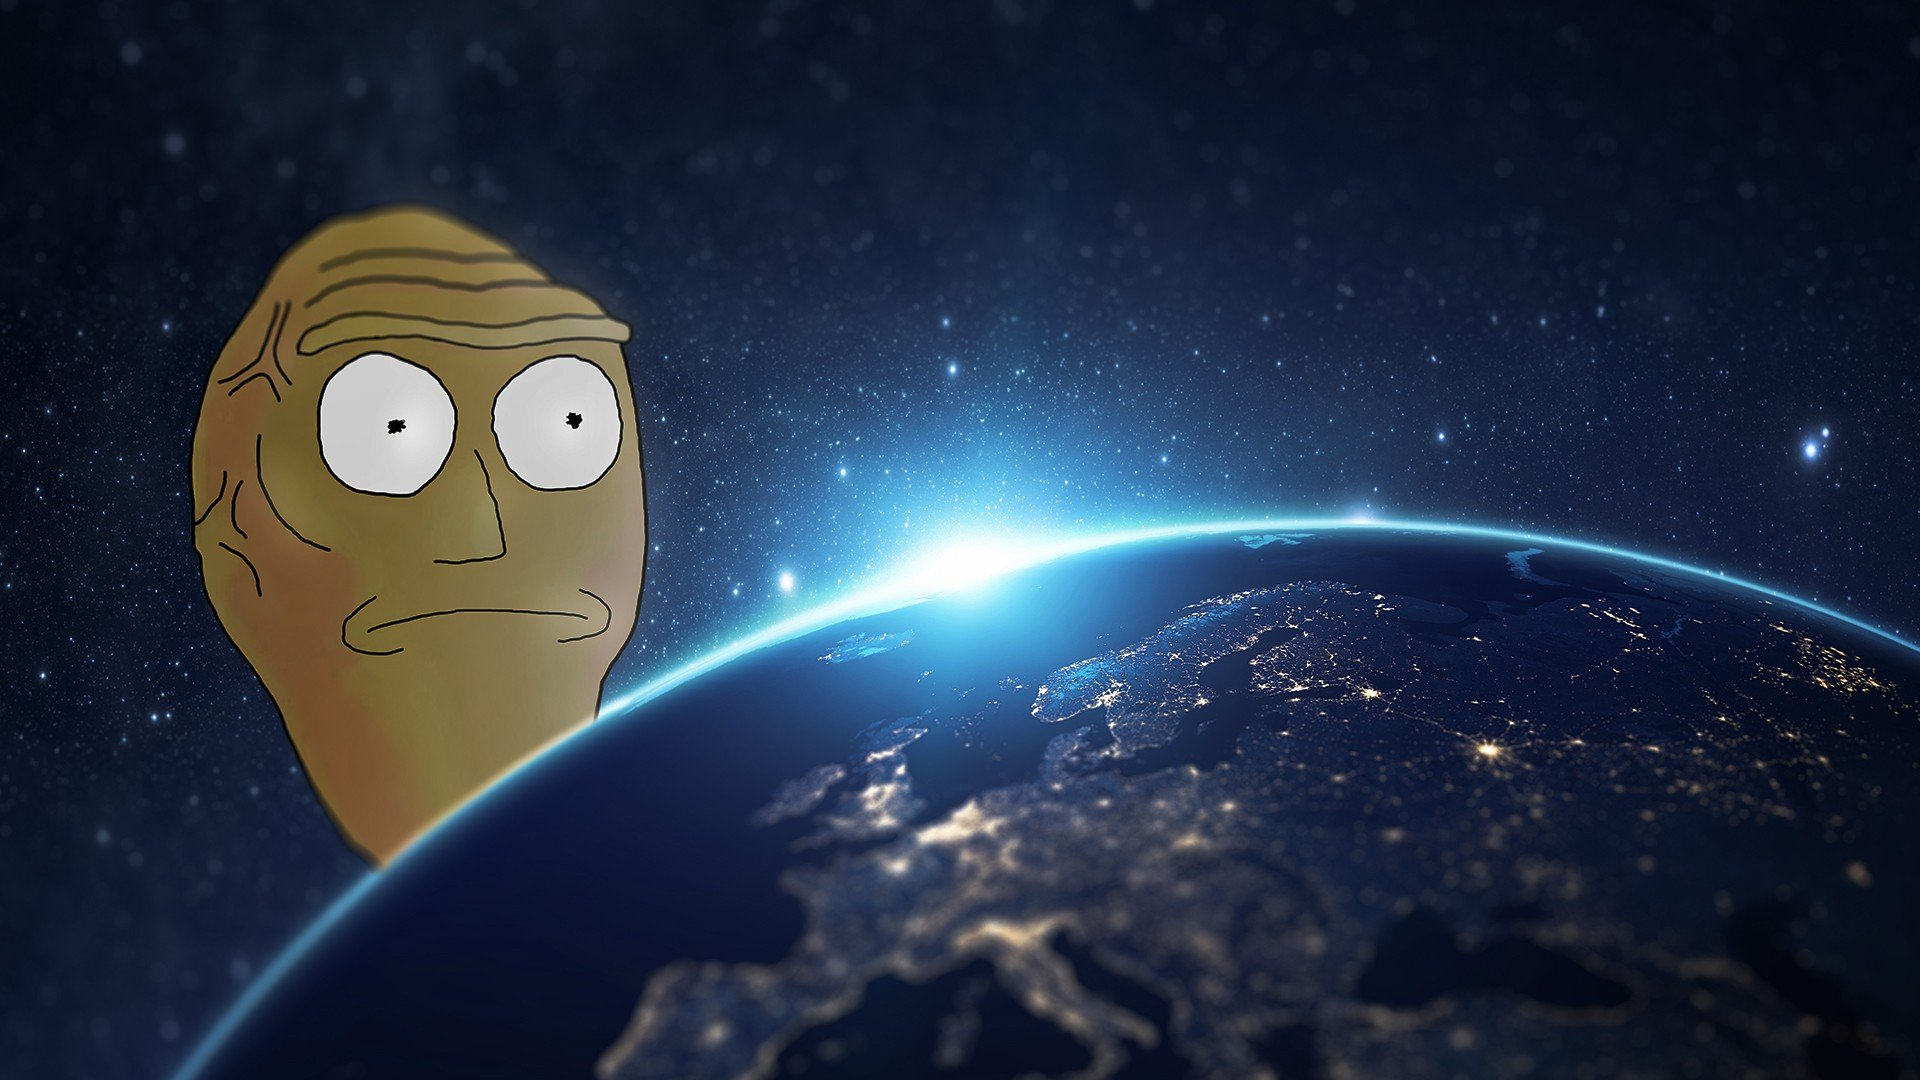 Rick And Morty Cartoon Earth Hd Wallpapers Desktop And Mobile